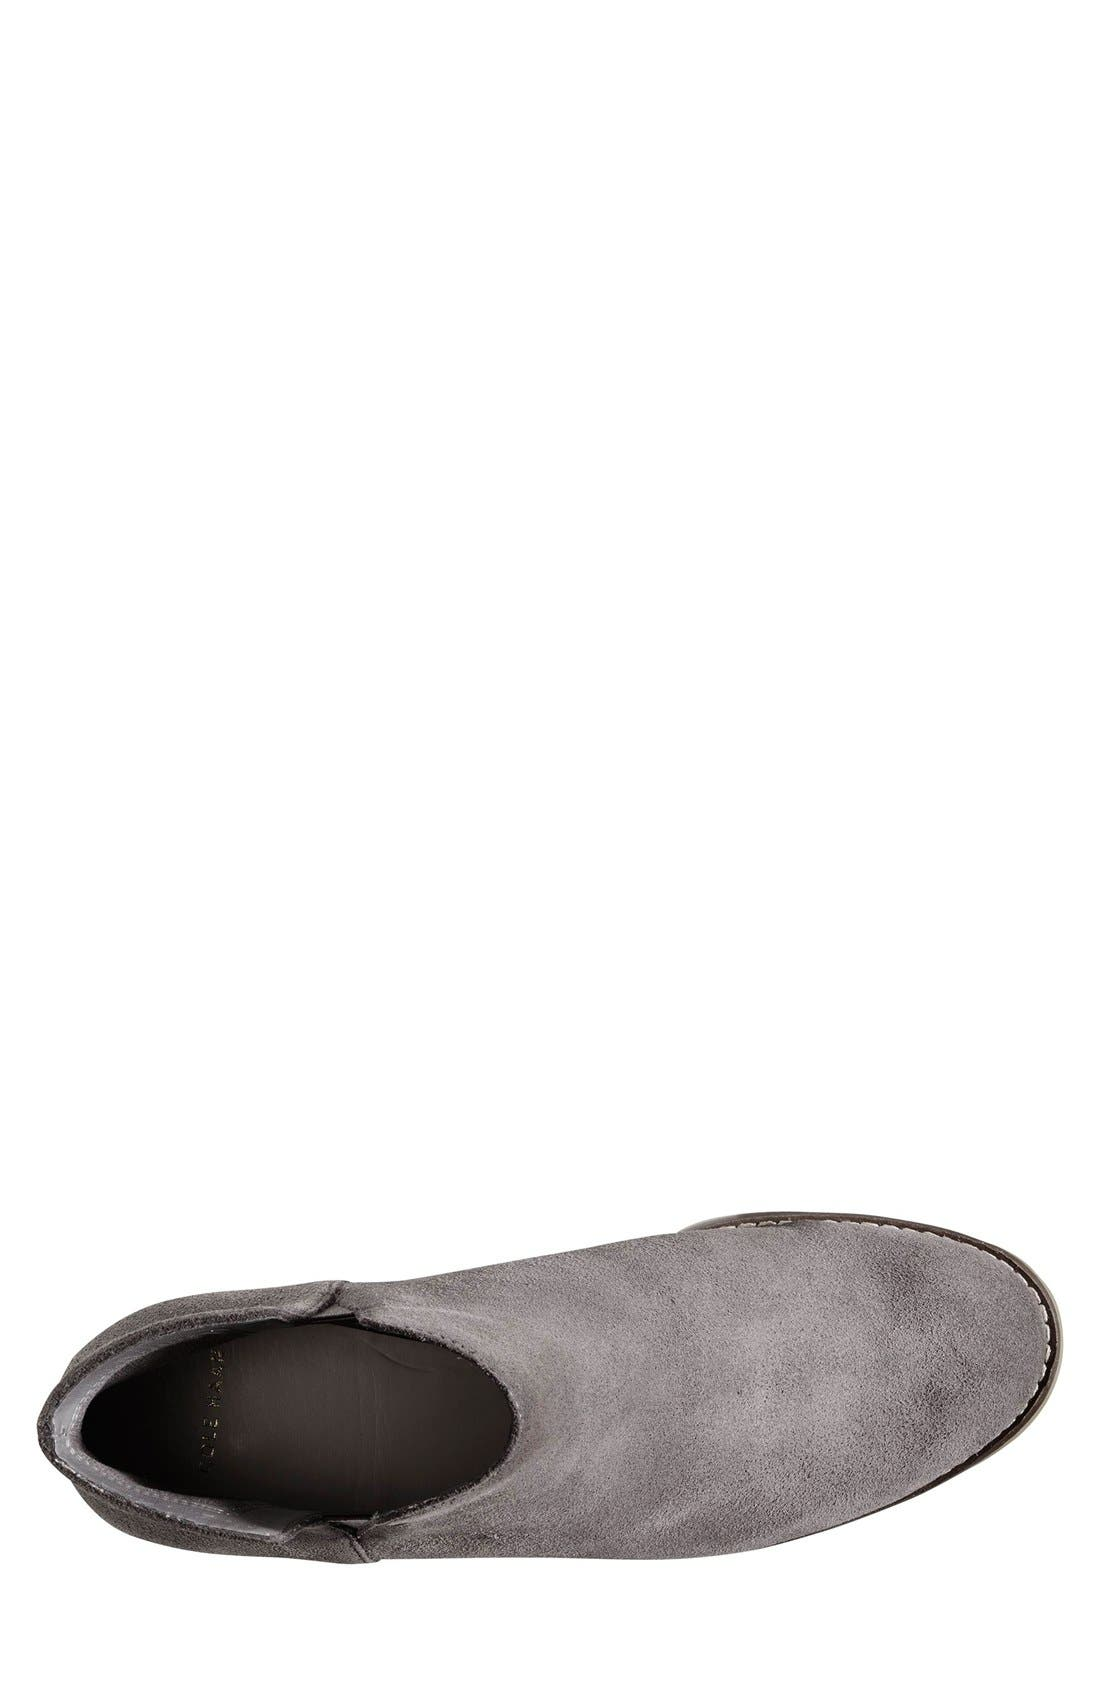 'Abbot' Chelsea Boot,                             Alternate thumbnail 39, color,